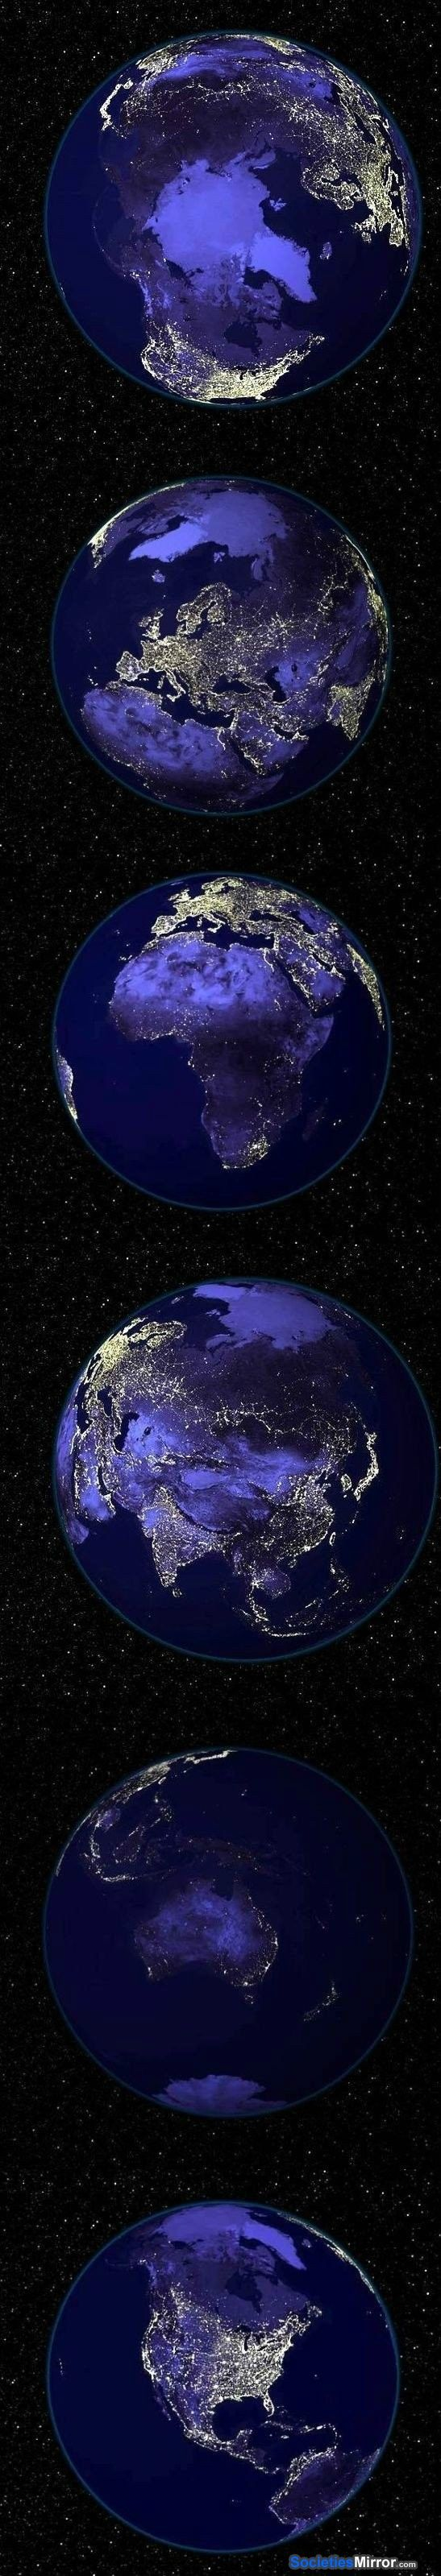 The Earth at Night - Nothing demonstrates population and wealth like the warm glow of cheap electricity from space.  Also, check out the Russian equivalent of manifest destiny...not quite as comprehensive as the American version, but then California is a lot nicer than Siberia.